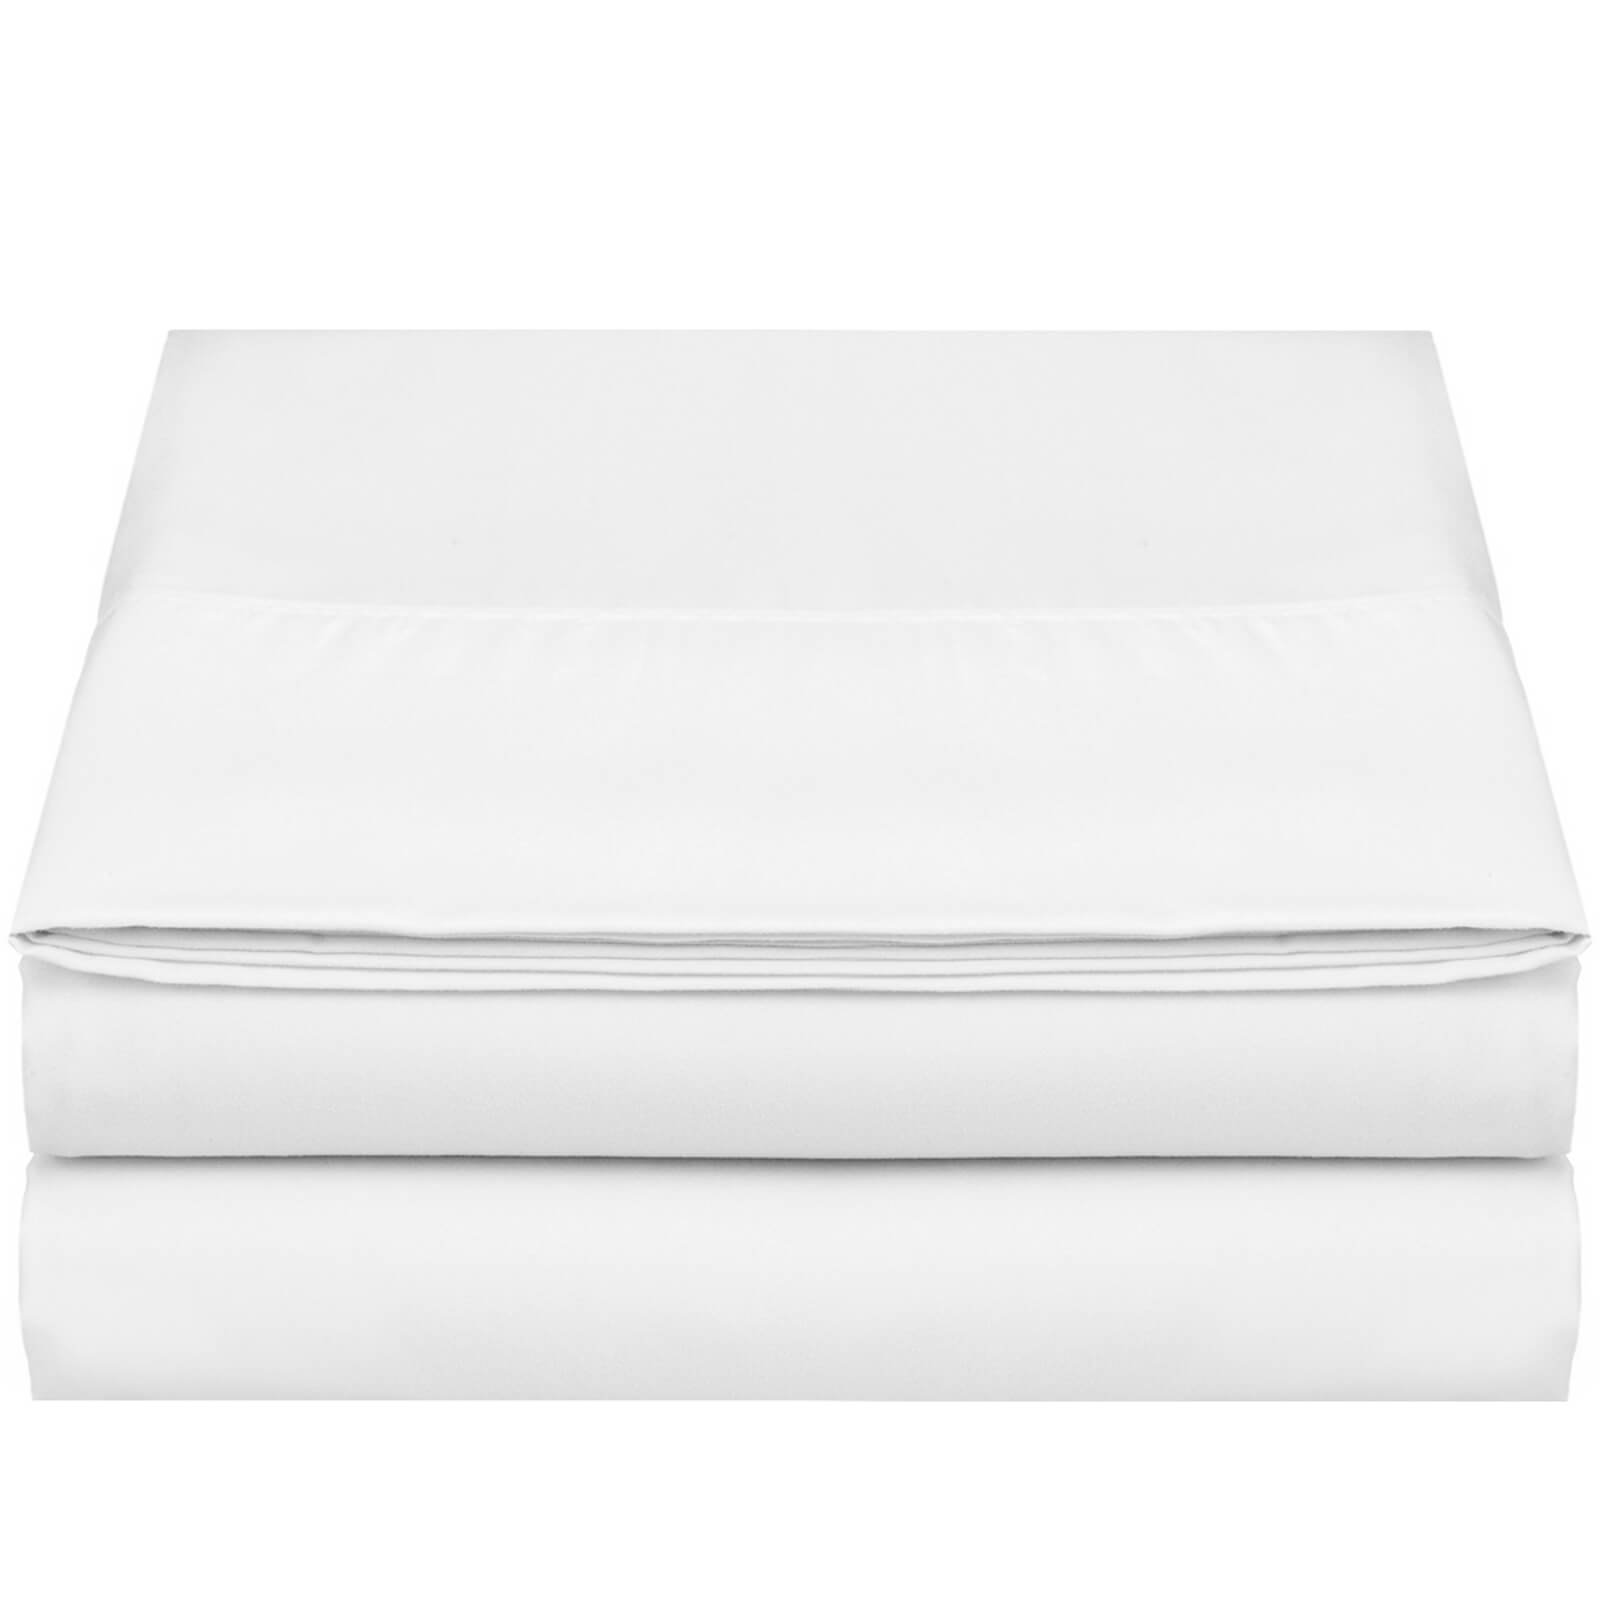 """Empyrean Bedding Premium Flat Sheet – """"110 GSM"""" Double Brushed Microfiber Extra Thick and Comfortable Flat Sheets, Luxurious & Soft Hotel Single Top Bed Sheet Hypoallergenic, King, White"""